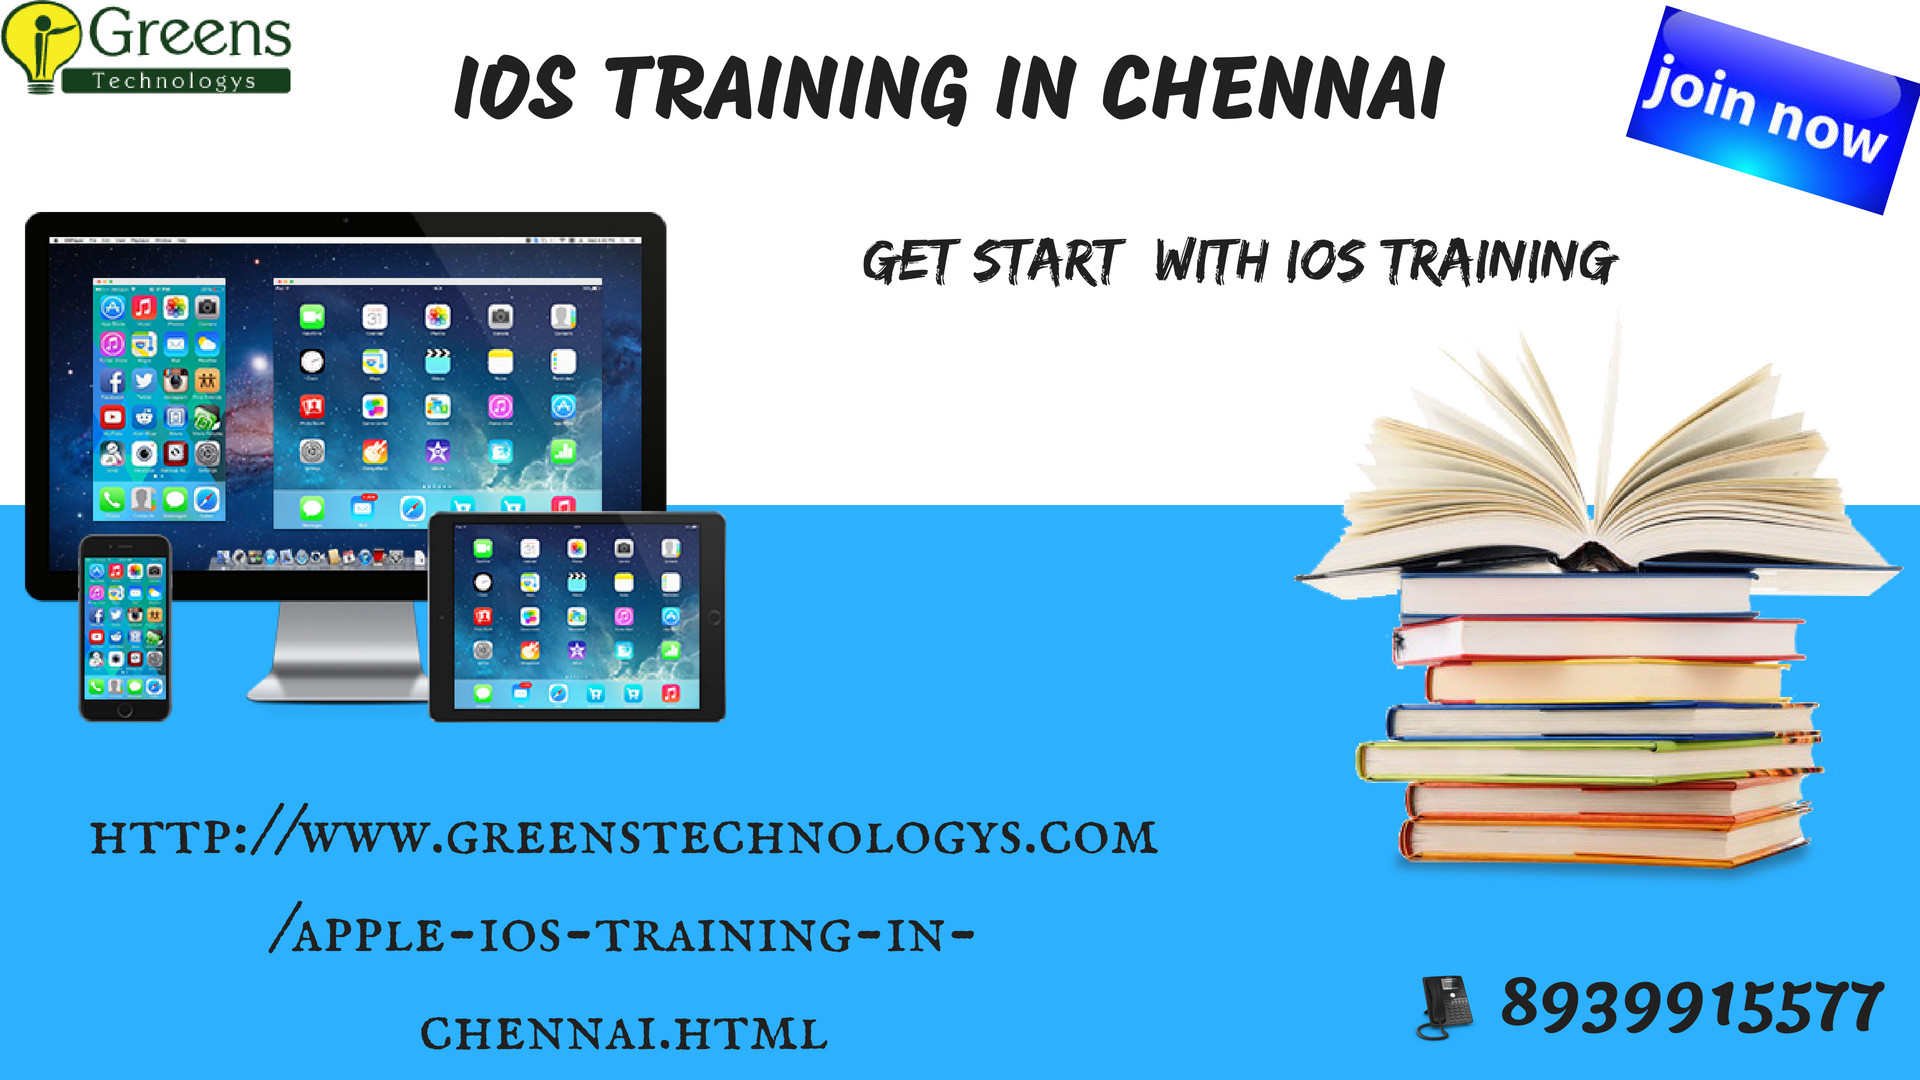 ios training chennai